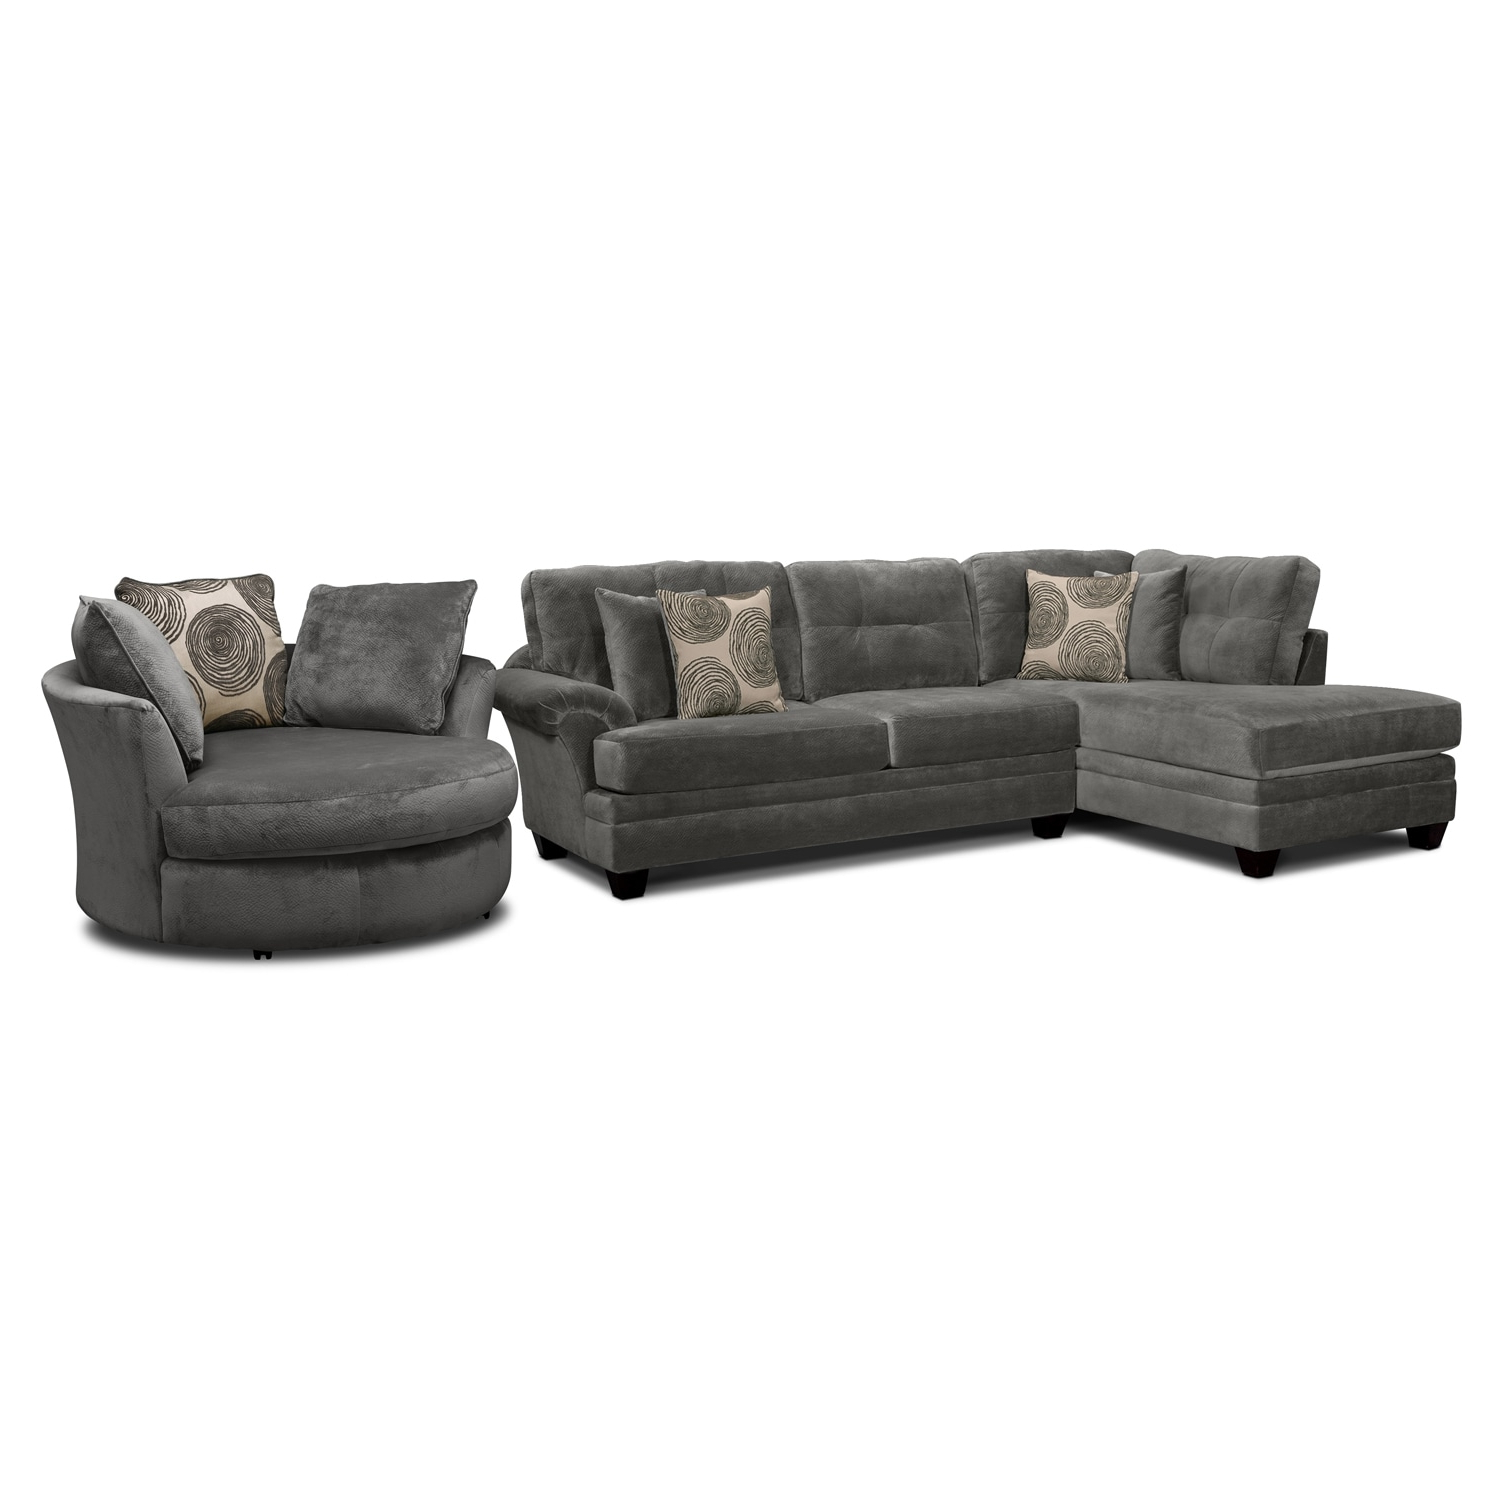 Fashionable New Left Facing Chaise Sectional Sofa – Sofas Intended For Tenny Cognac 2 Piece Left Facing Chaise Sectionals With 2 Headrest (View 9 of 20)